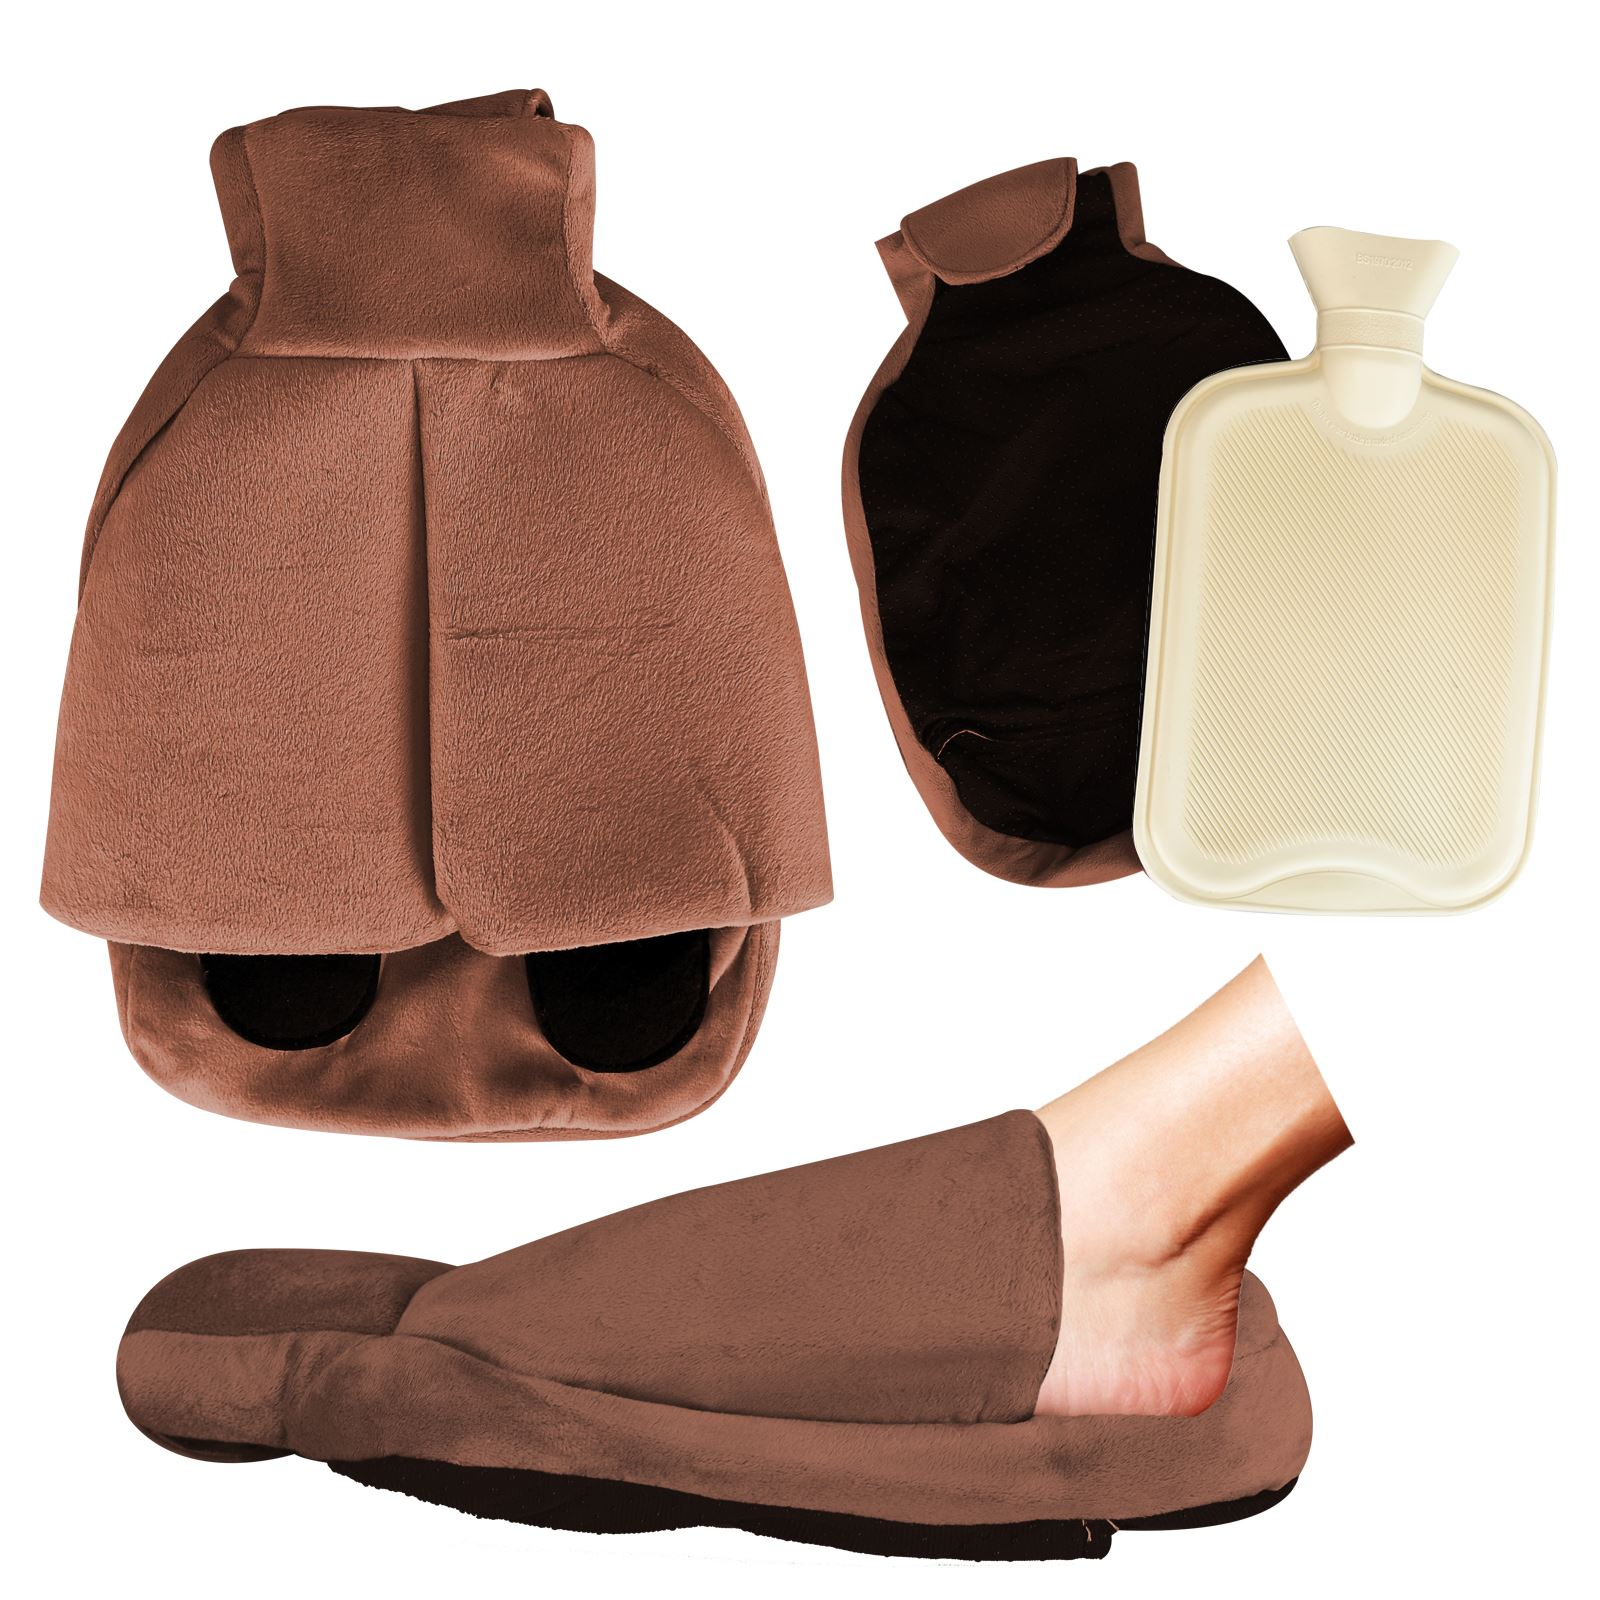 Hot Water Bottle Foot Warmer Shopmonk